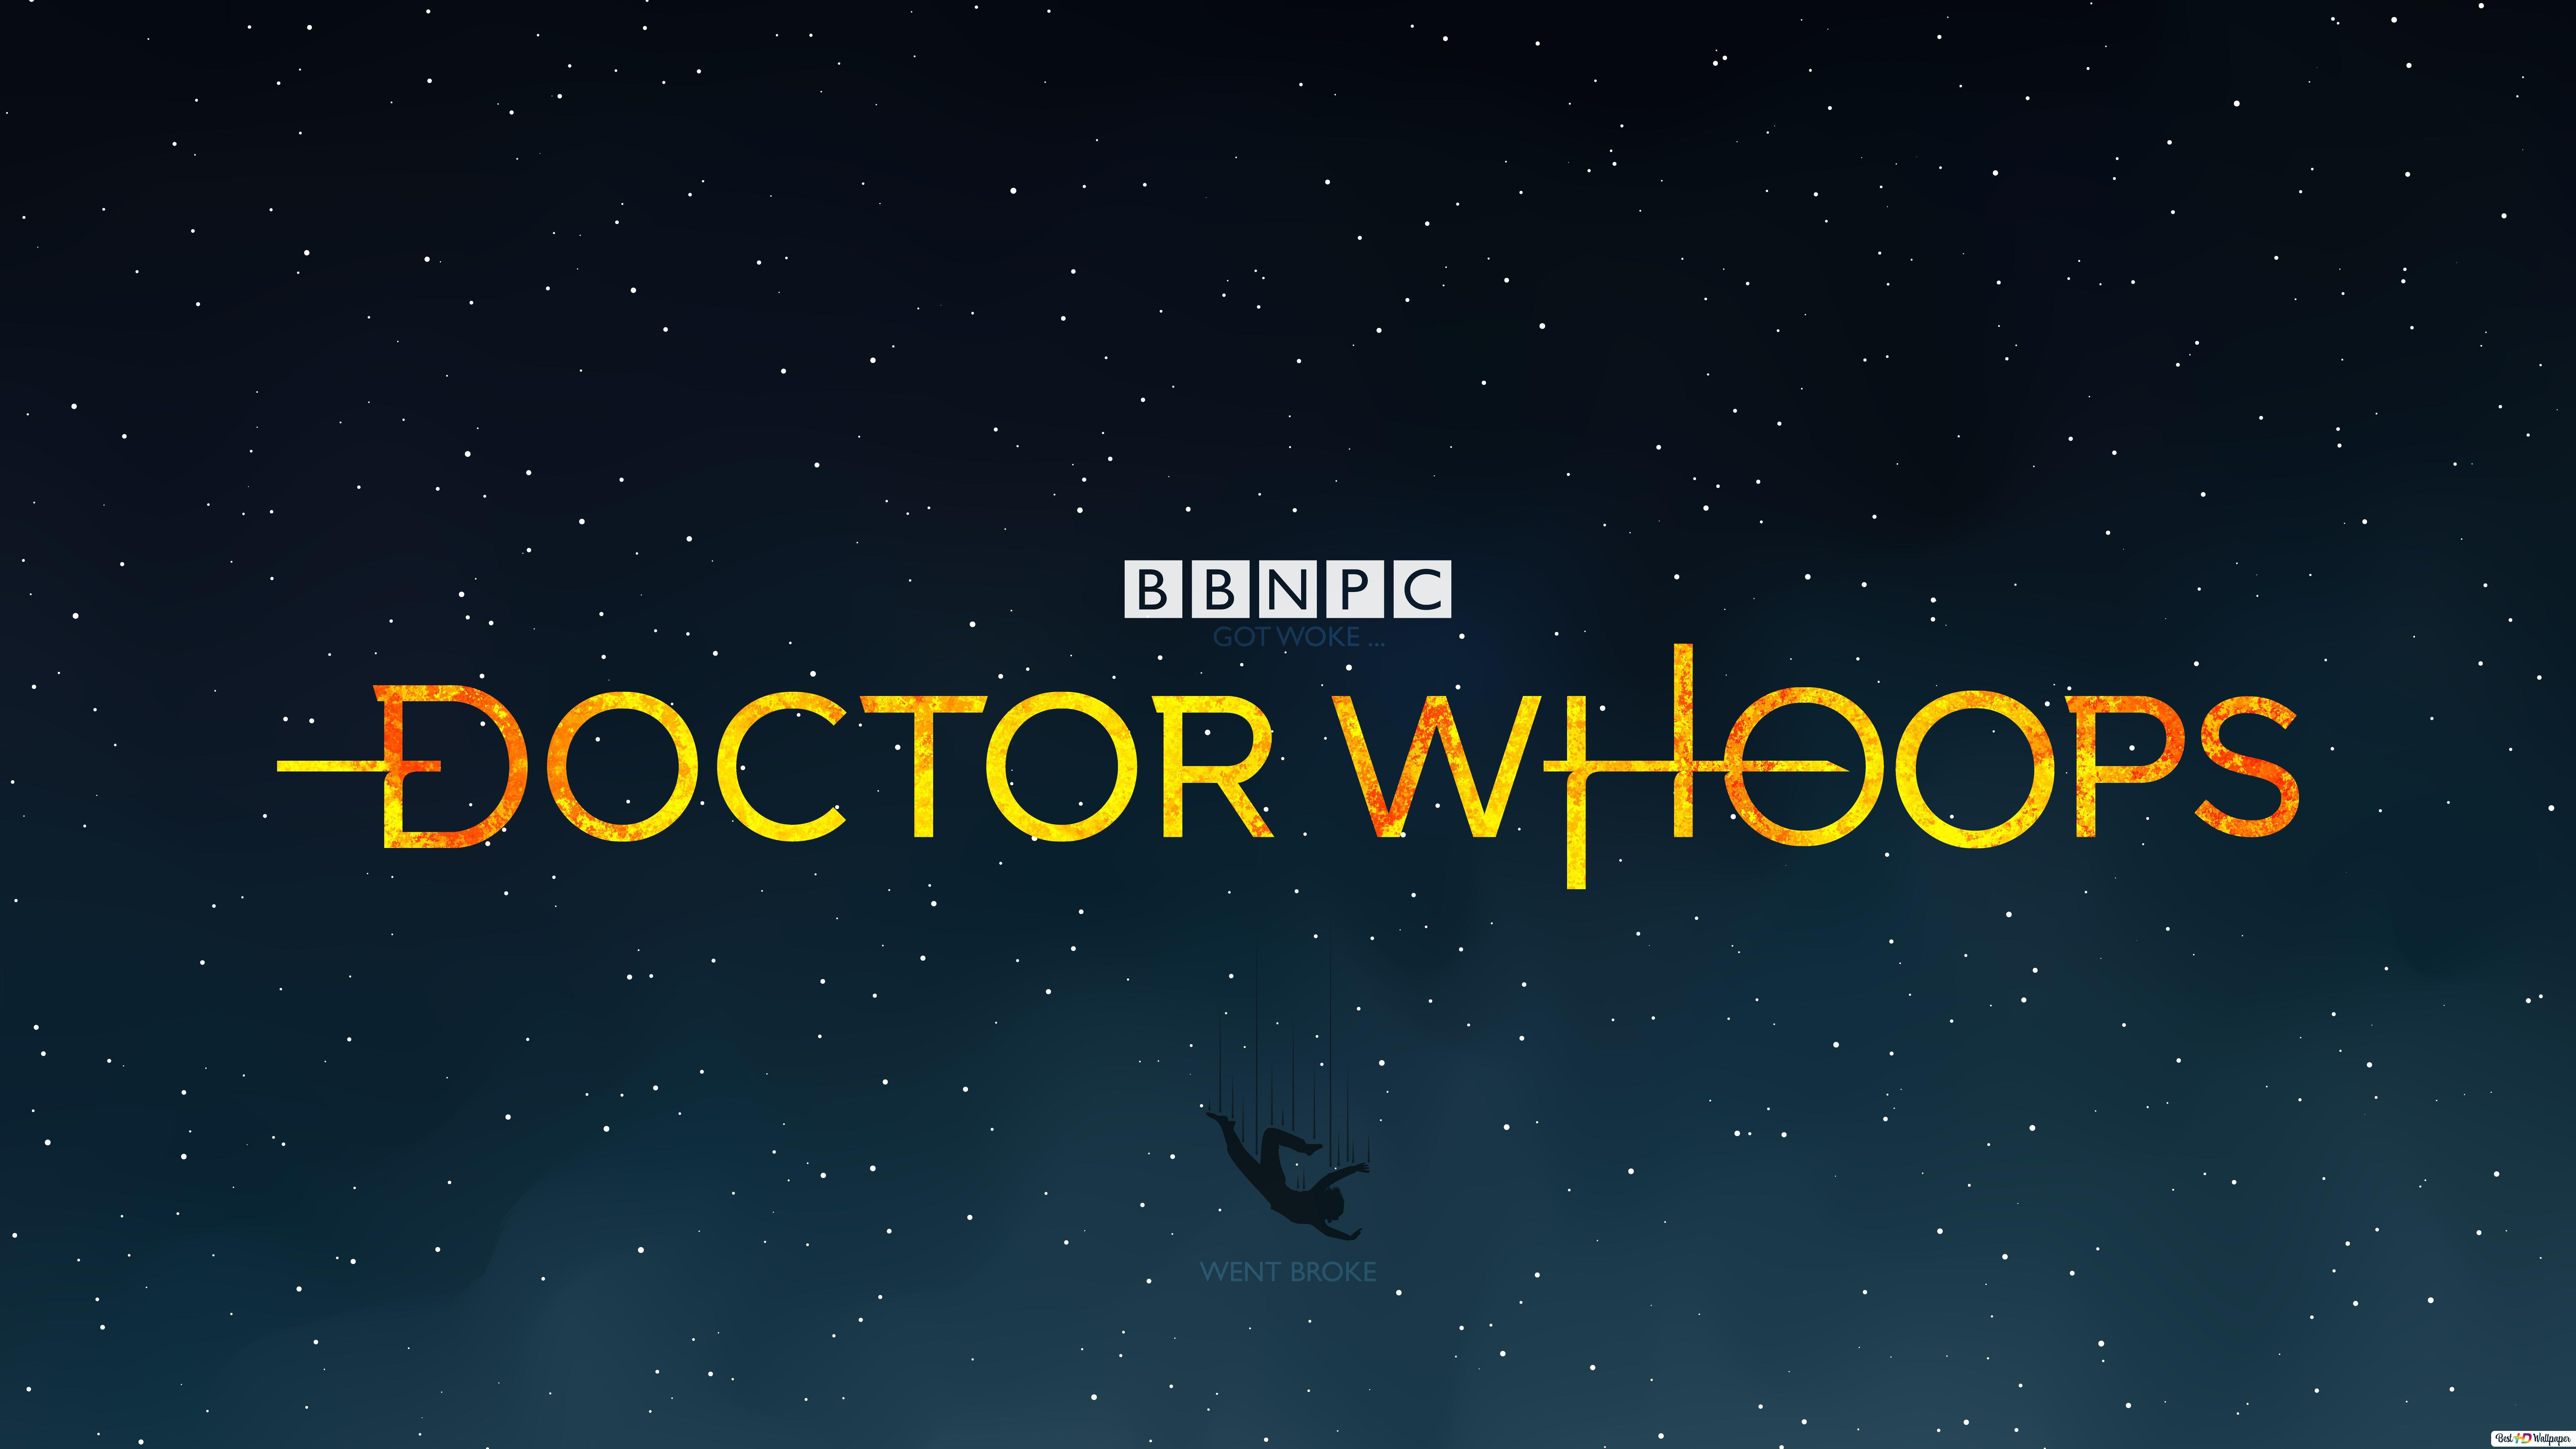 Bbc dr who clipart.